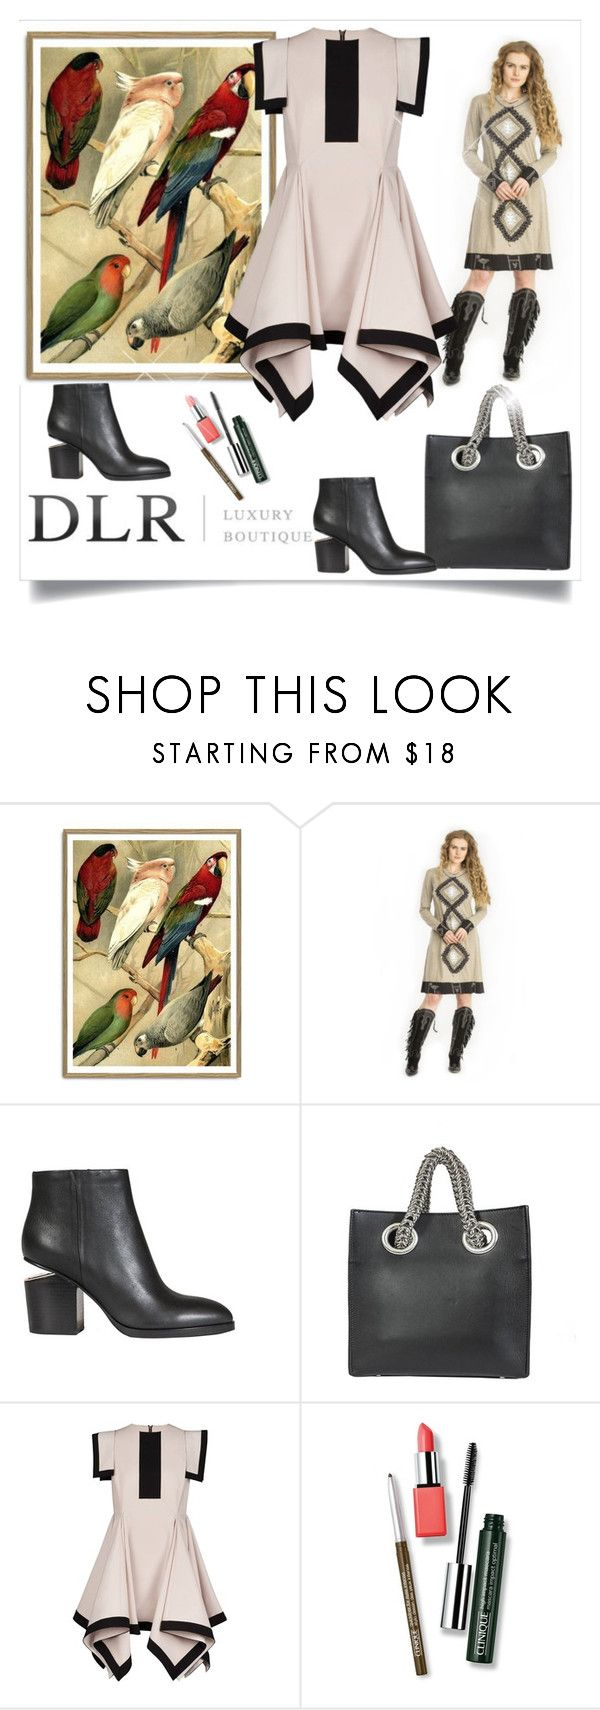 welcome promo code dlr15 by misaflowers liked on polyvore featuring the dybdahl co